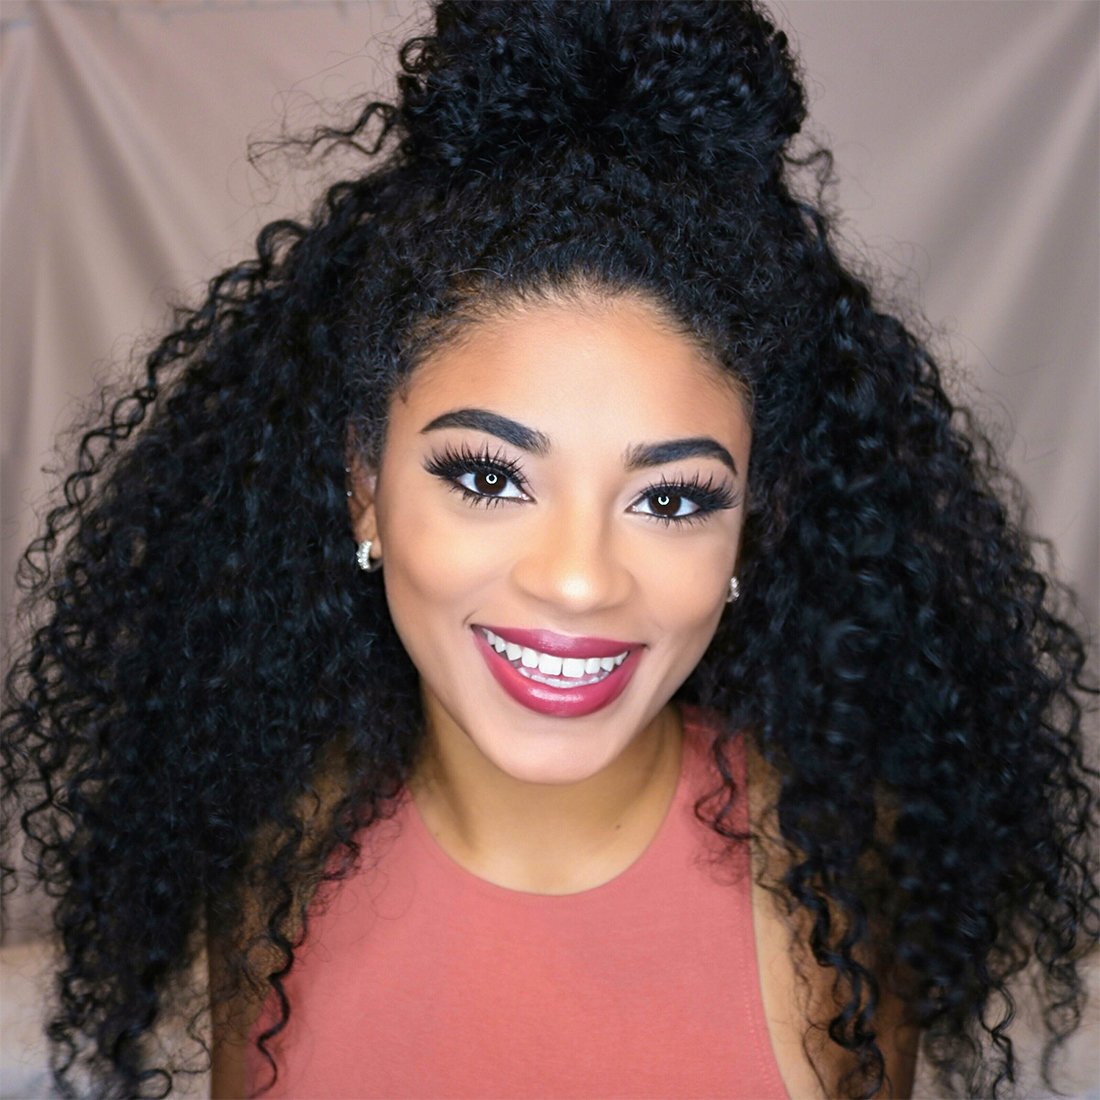 18'' Deep Curly Glueless Lace Front Human Hair Wigs with Baby Hair for Black Women 360 Pre Plucked Virgin Brazilian Deep Wave Wig Adjustable Strap Silk Base Lace Wigs Natural Hairline